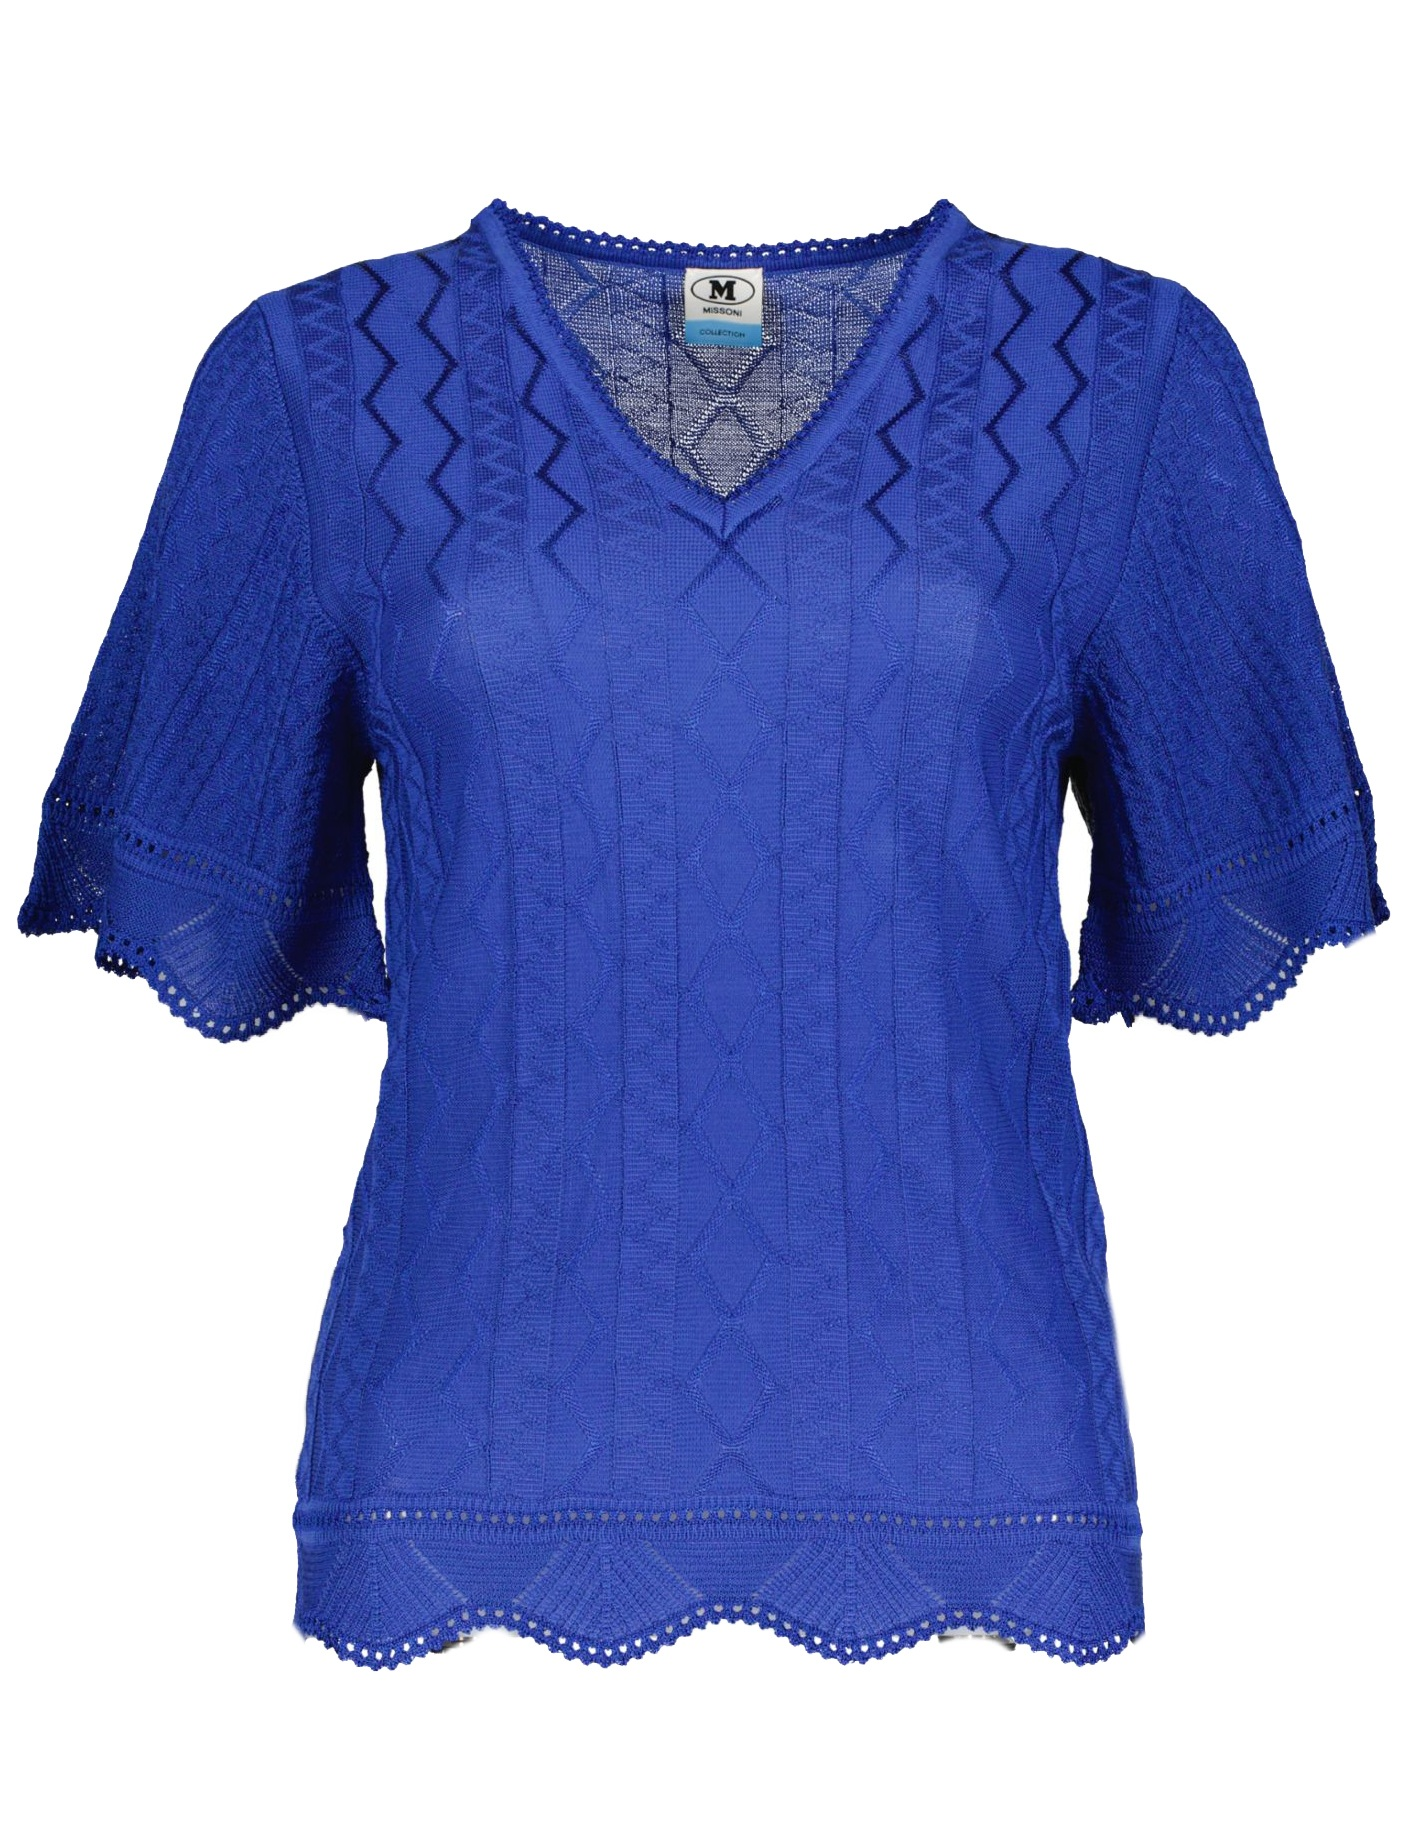 long knitted top blue _Front_M1500x15000JPG